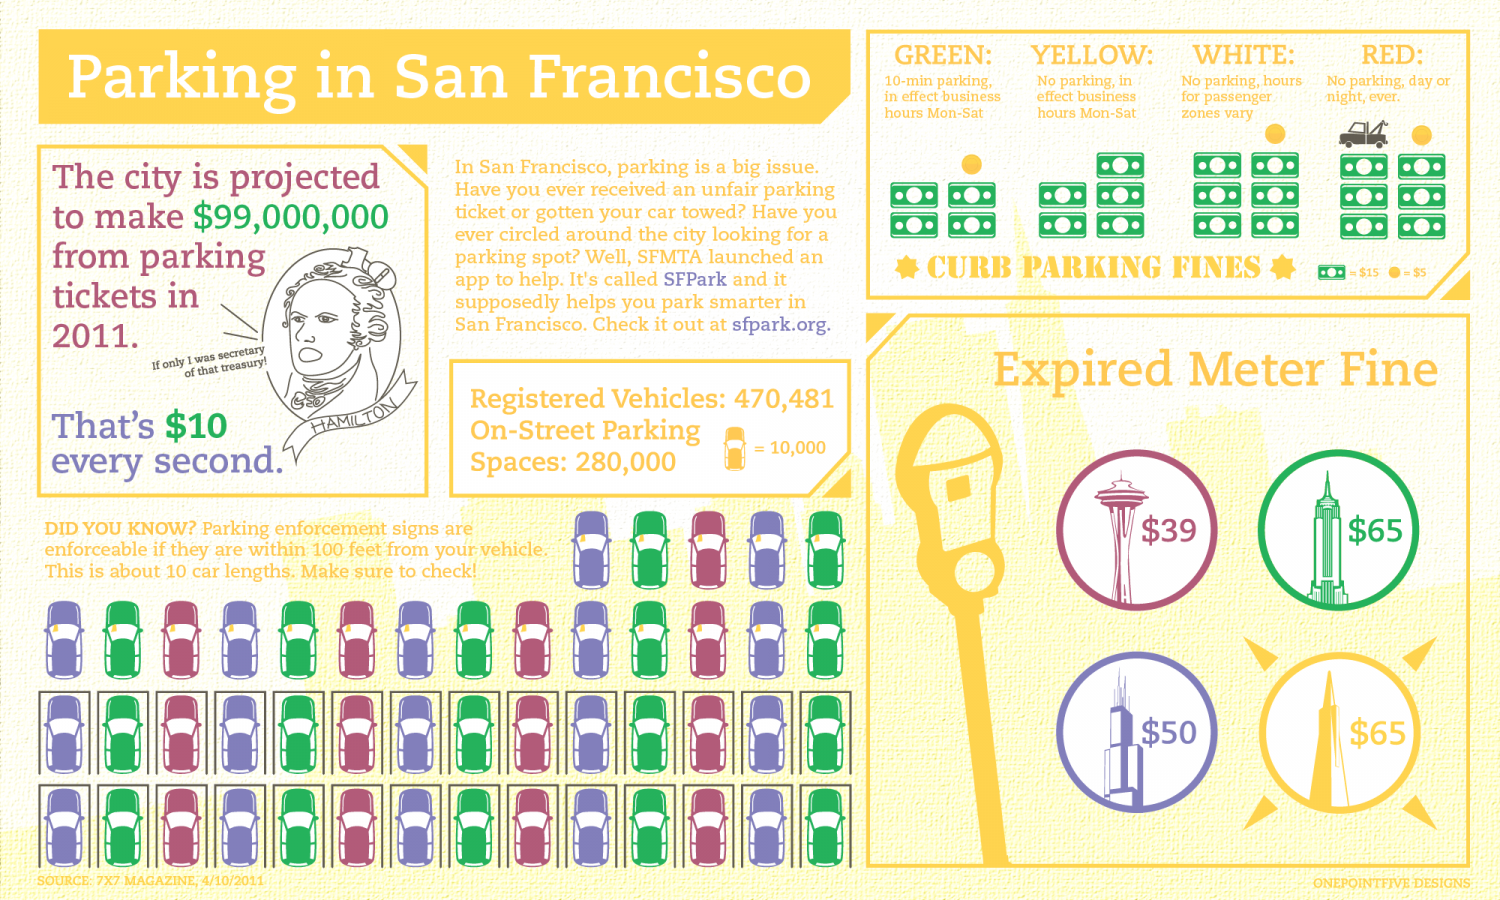 Parking in San Francisco Infographic